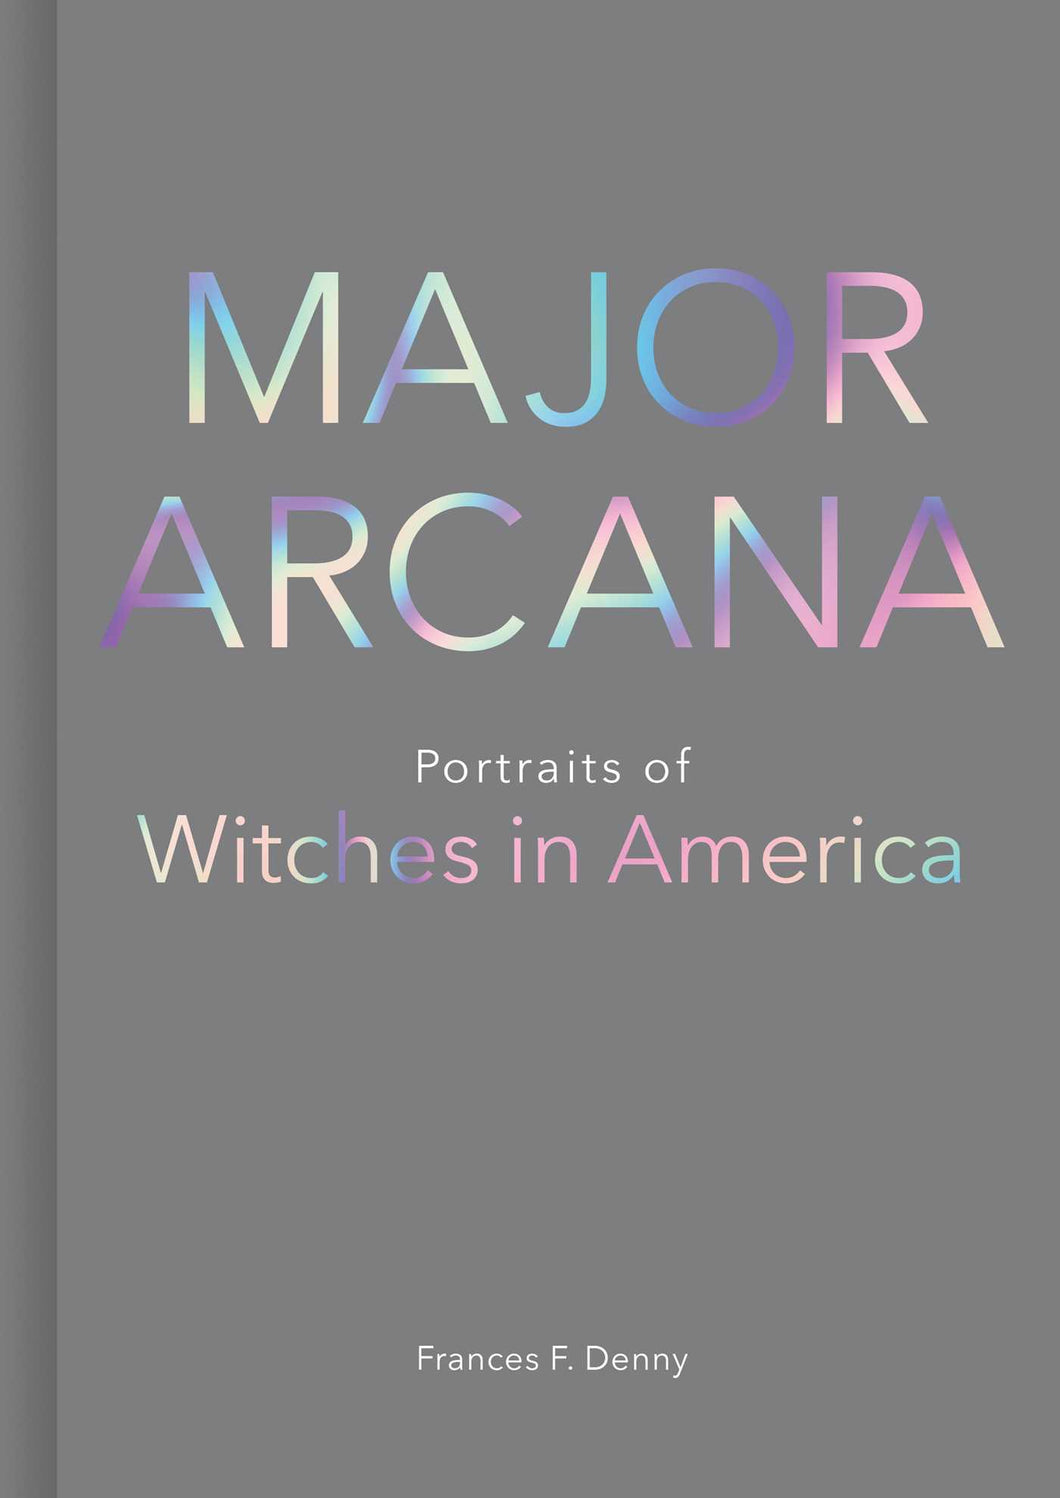 Major Arcana: Portraits of Witches in America - Frances F. Denny